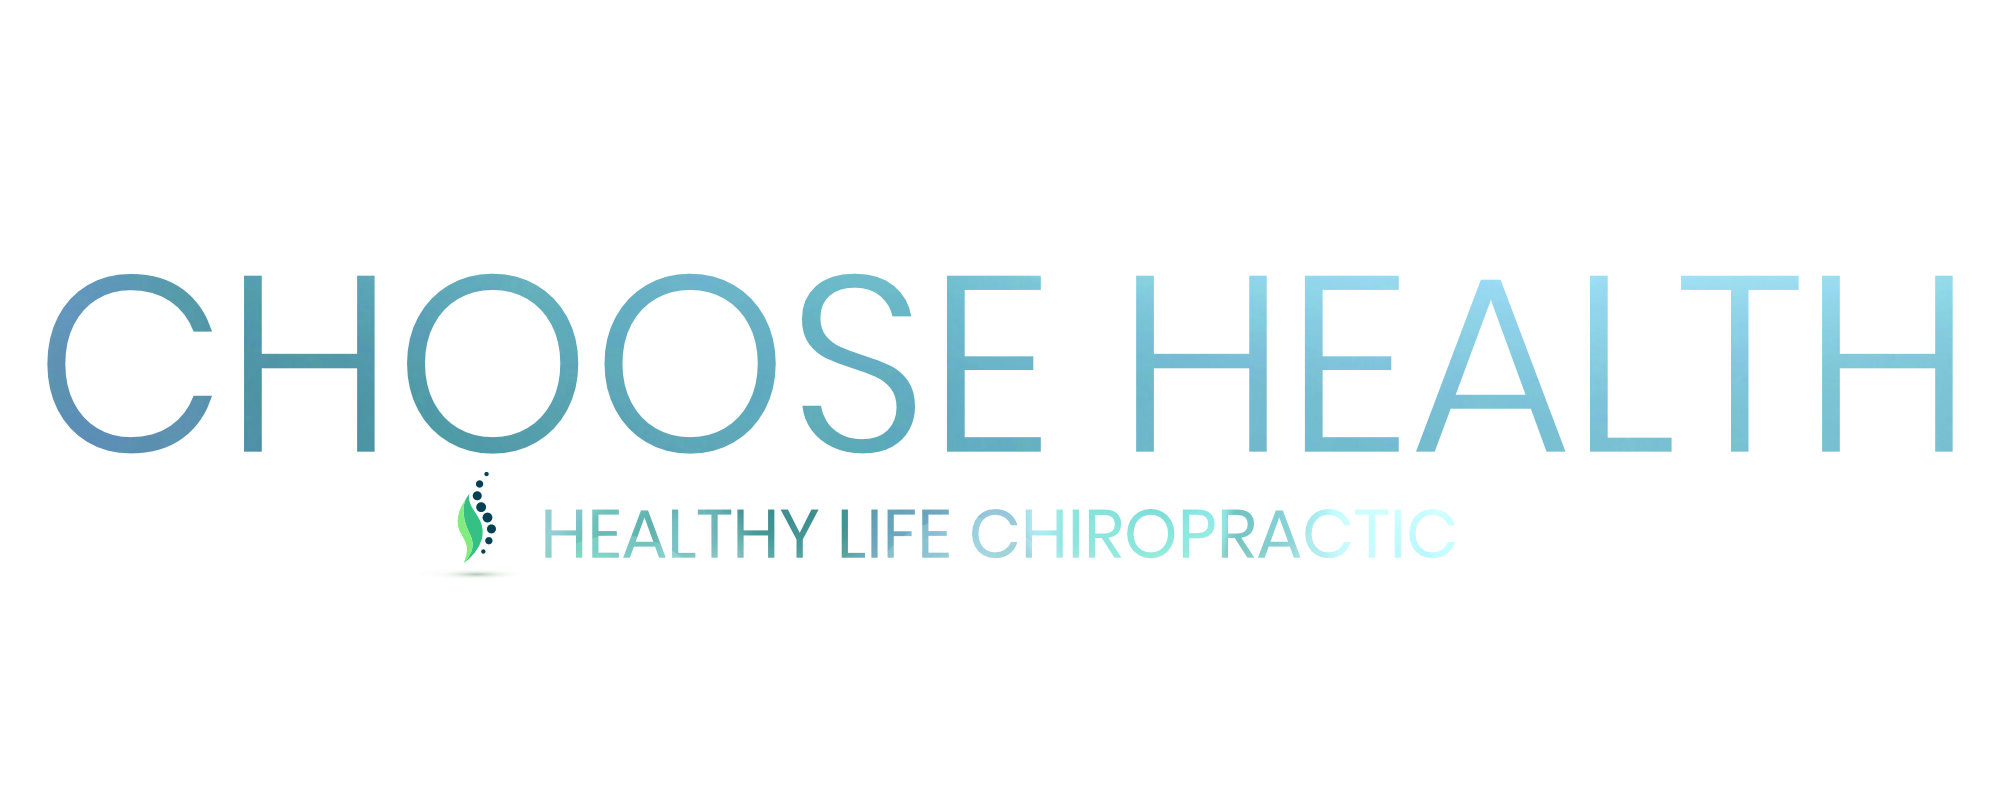 Healthy Life Chiropractic - Stop by this business to find out about their deal!